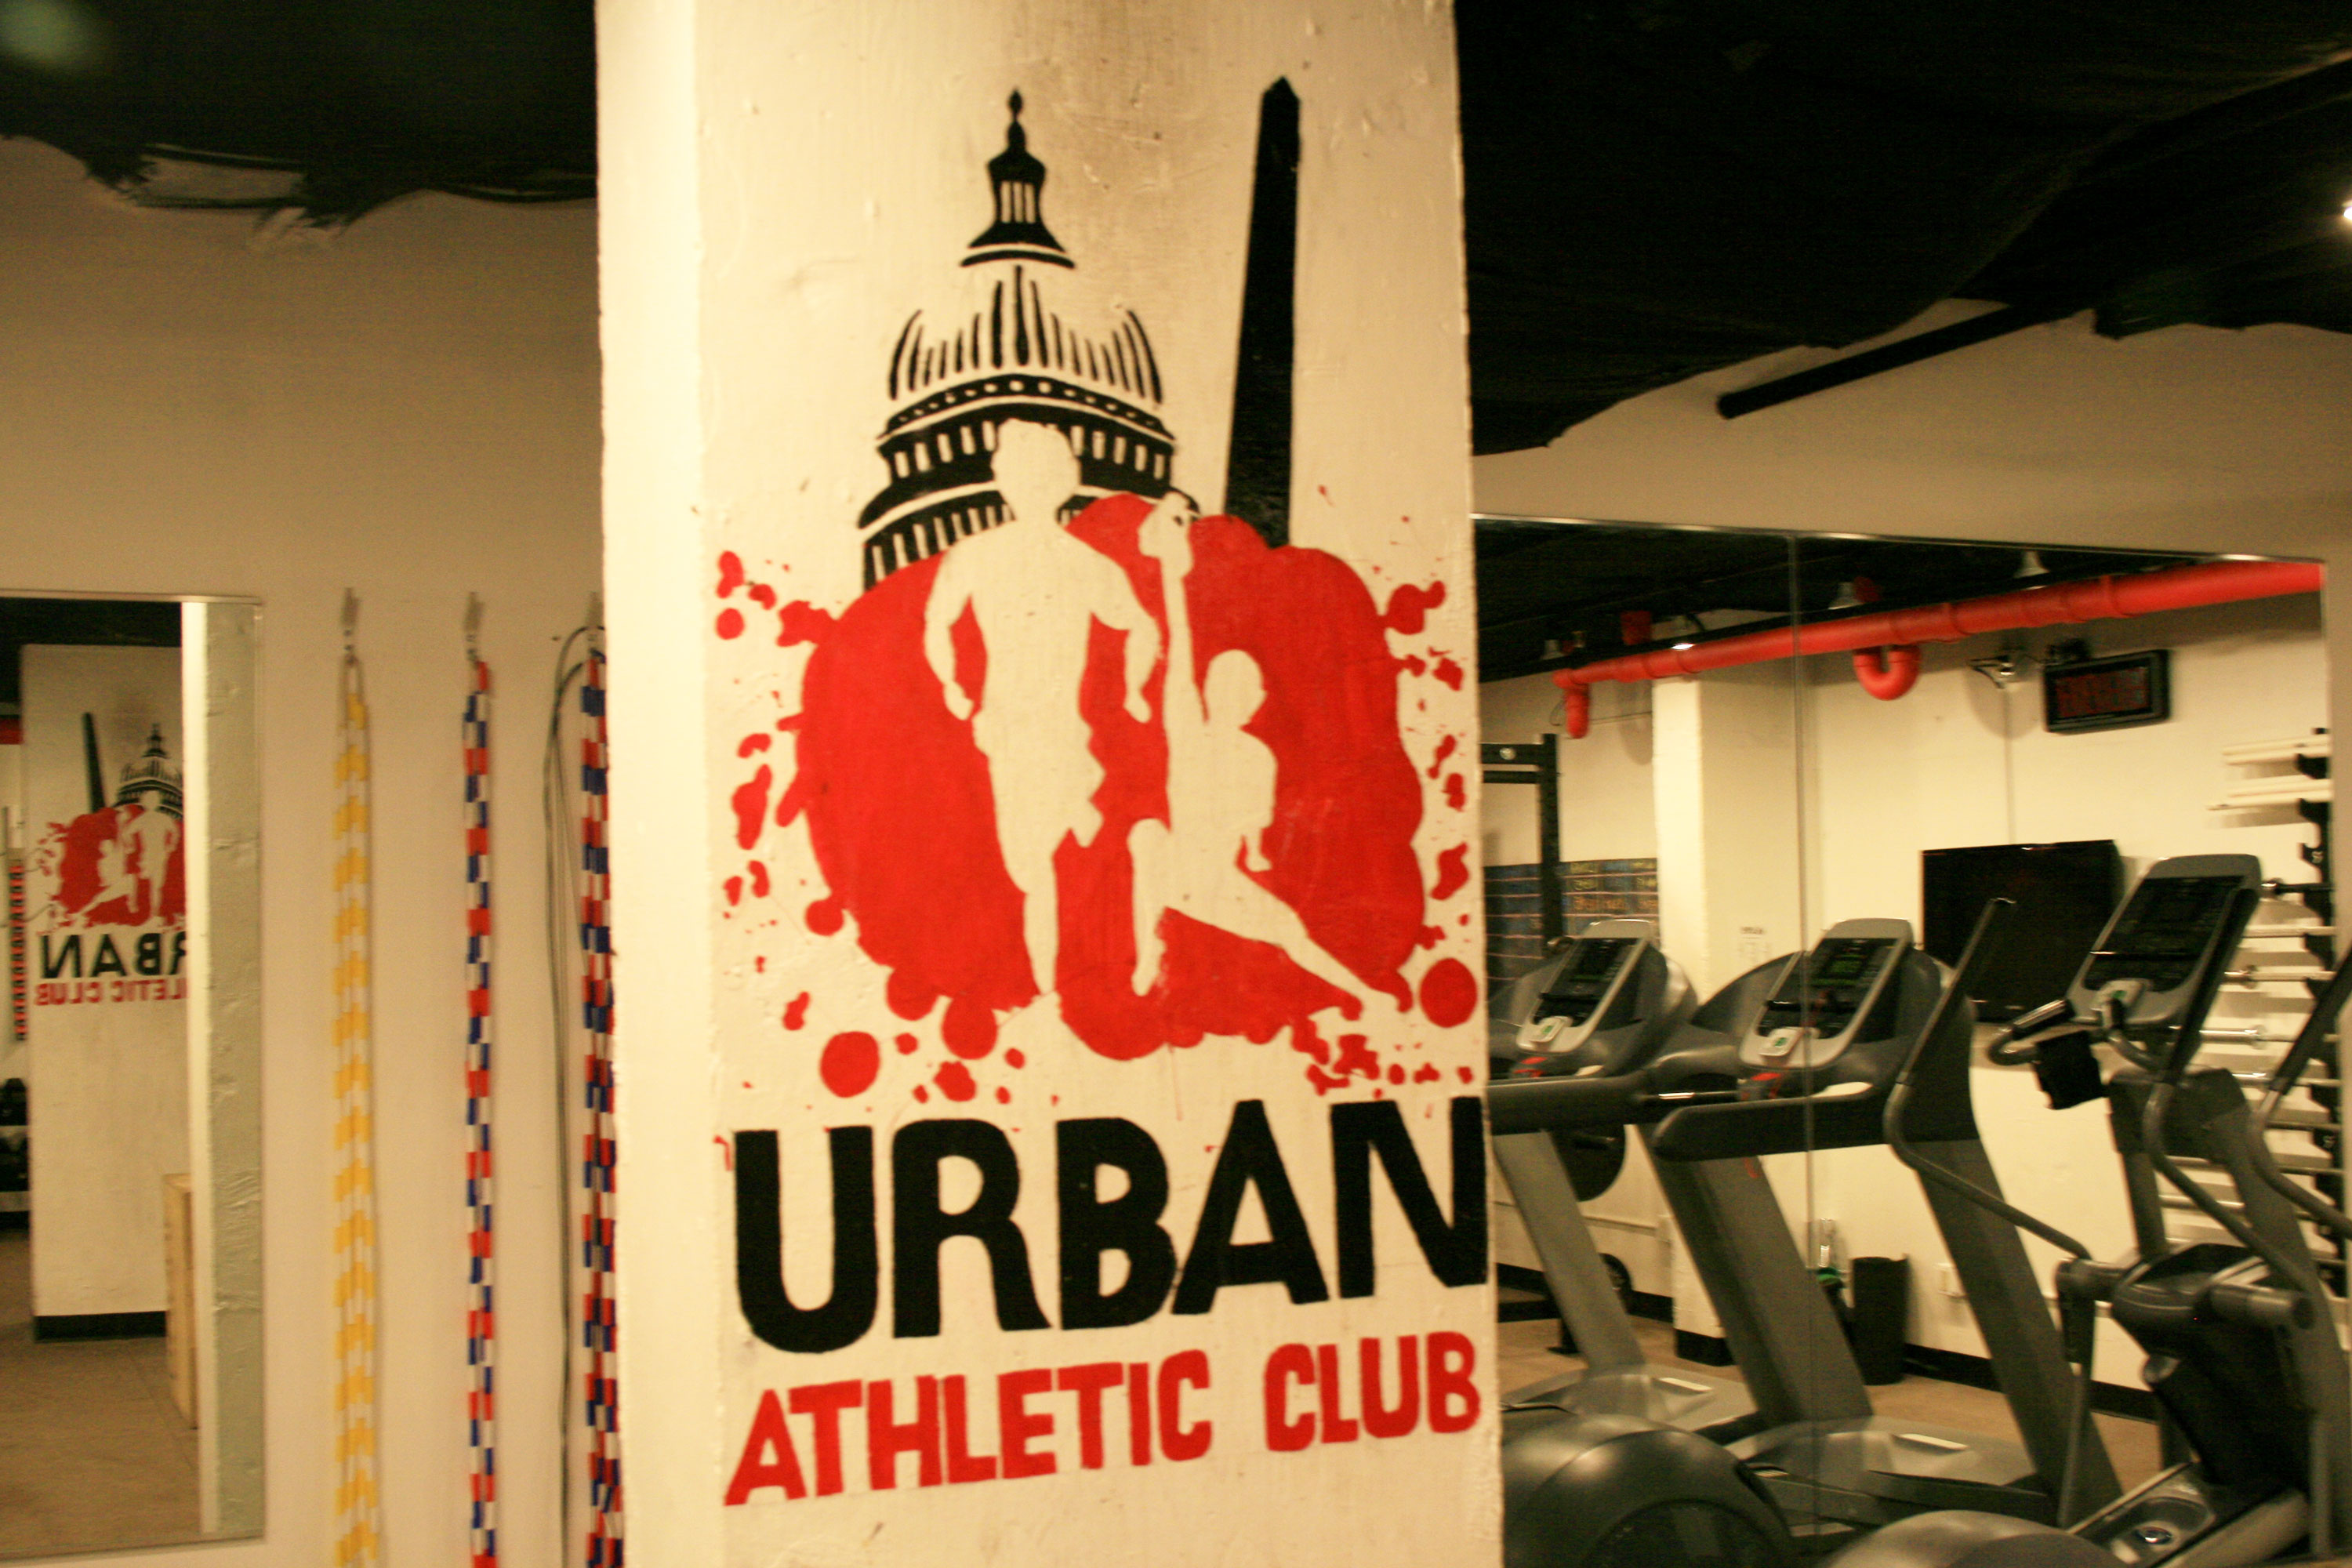 Urban Athletic Club